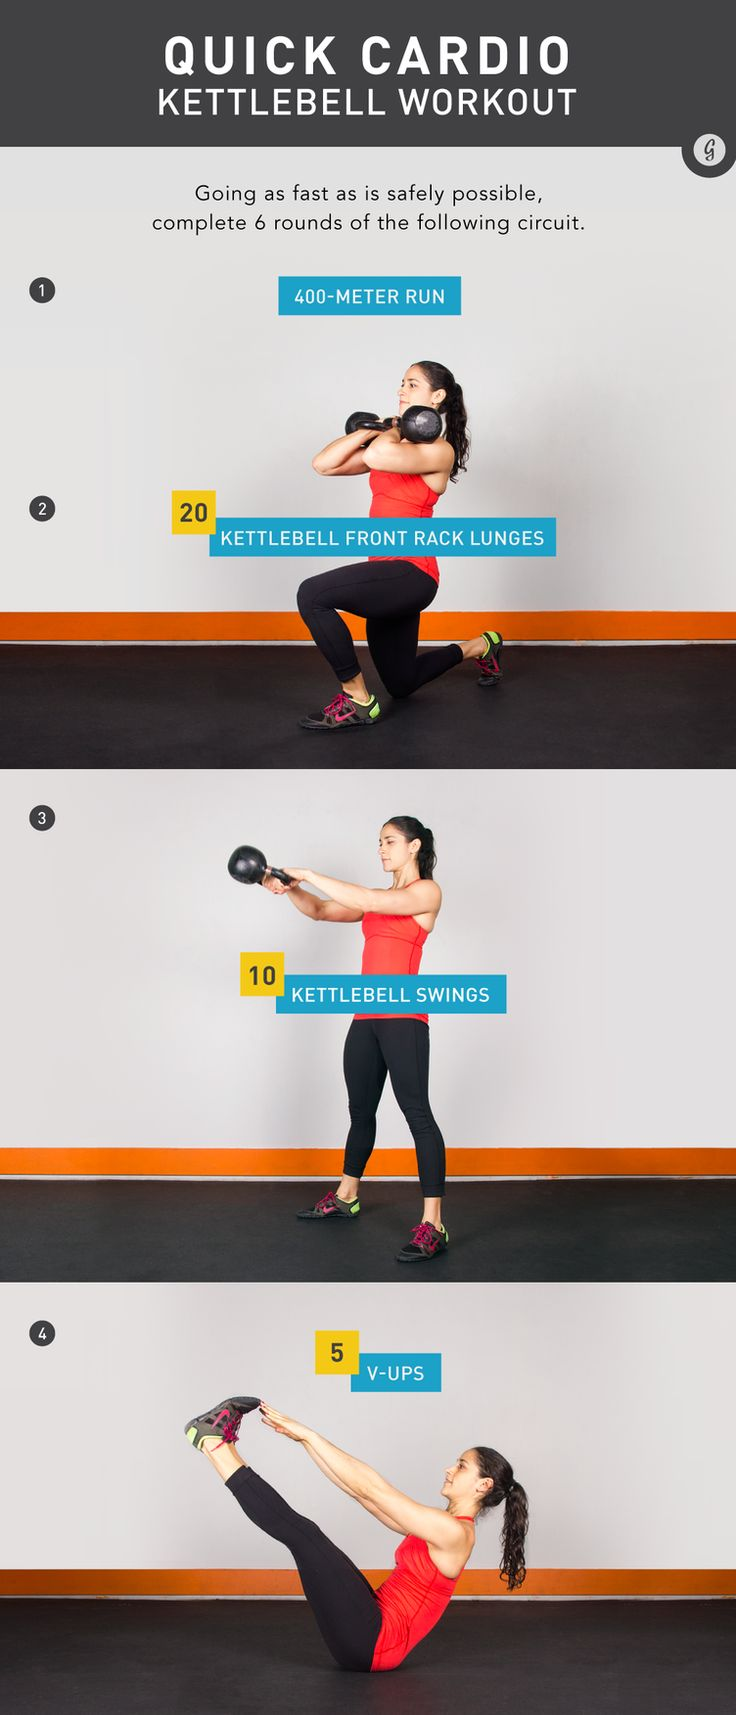 This quick routine provides a total-body workout that will challenge your strength as well as your conditioning. #fitness #workout #cardio